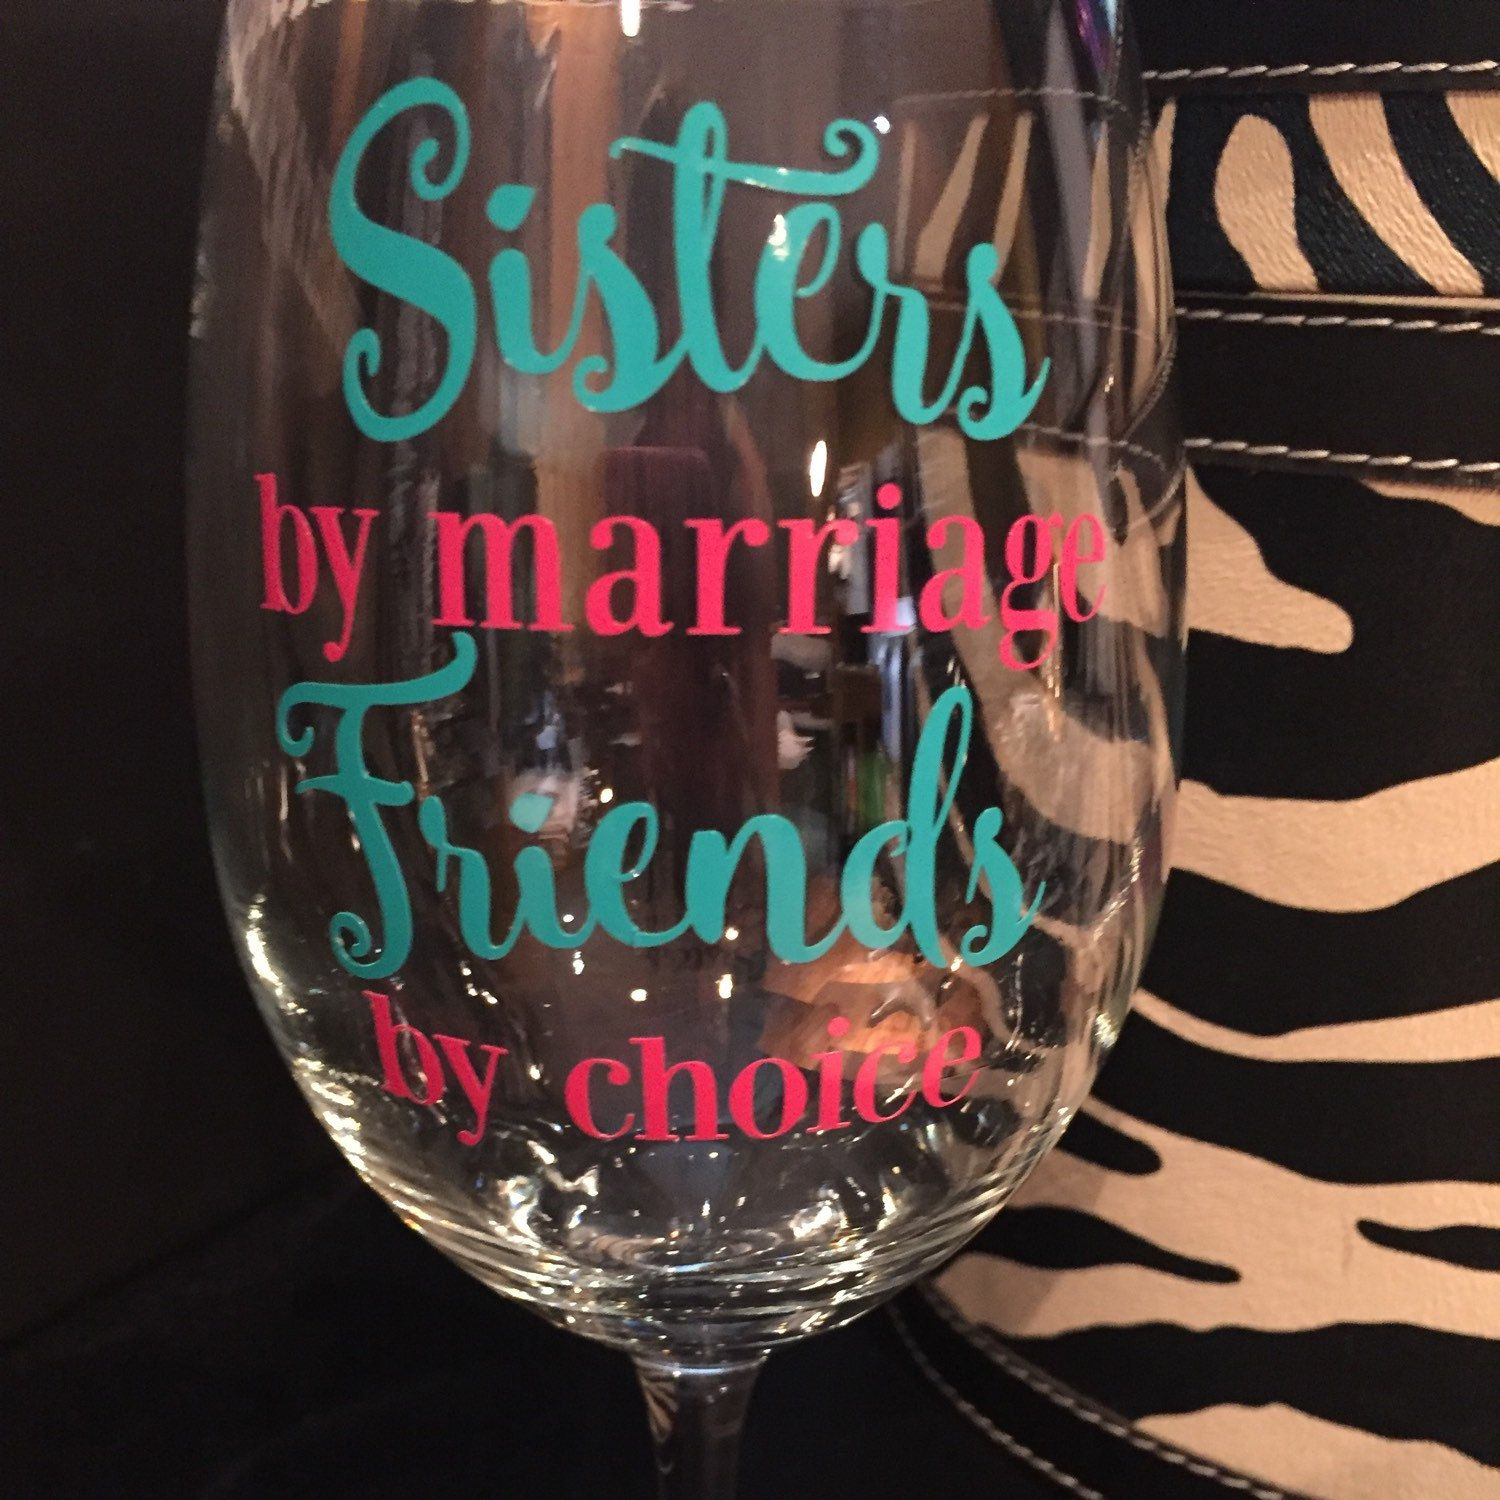 Sister Gift Sisters By Marriage Friends By Choice Wine Glass - Vinyl decals for drinking glasses